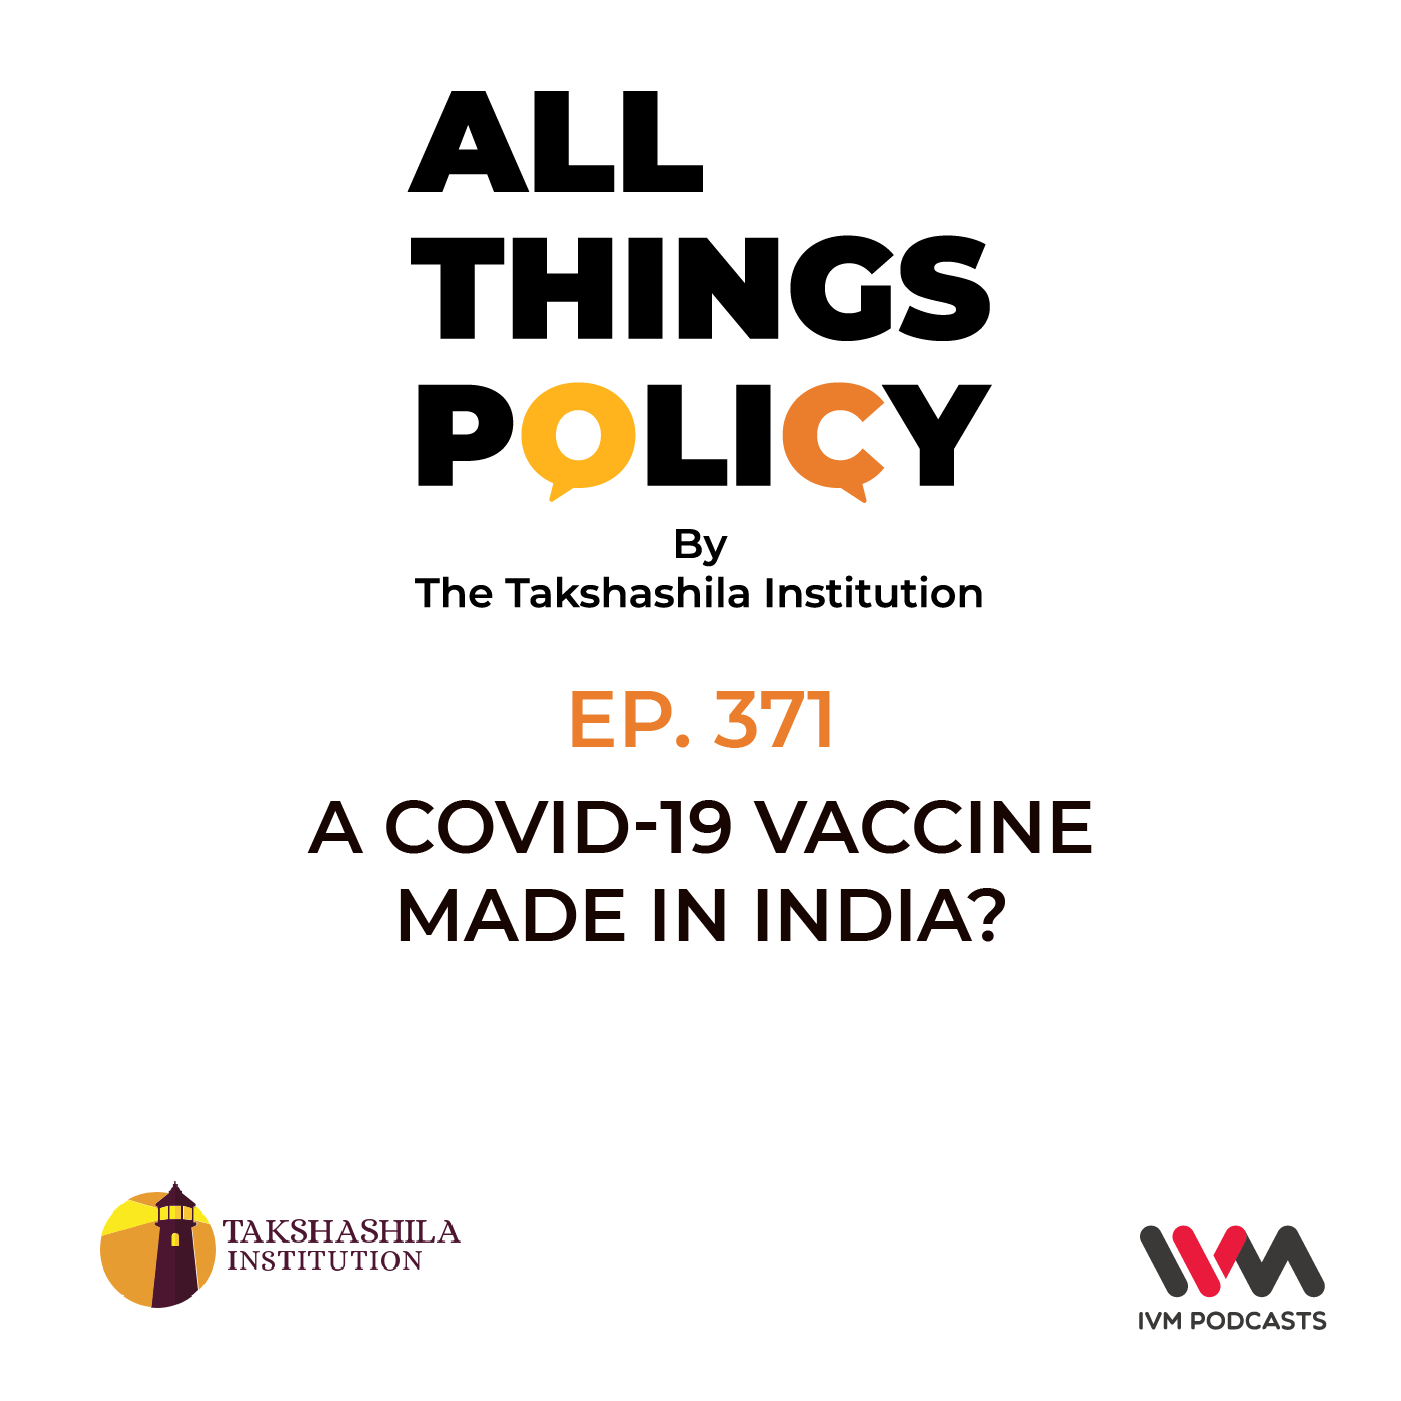 Ep. 371: A COVID-19 Vaccine Made in India?